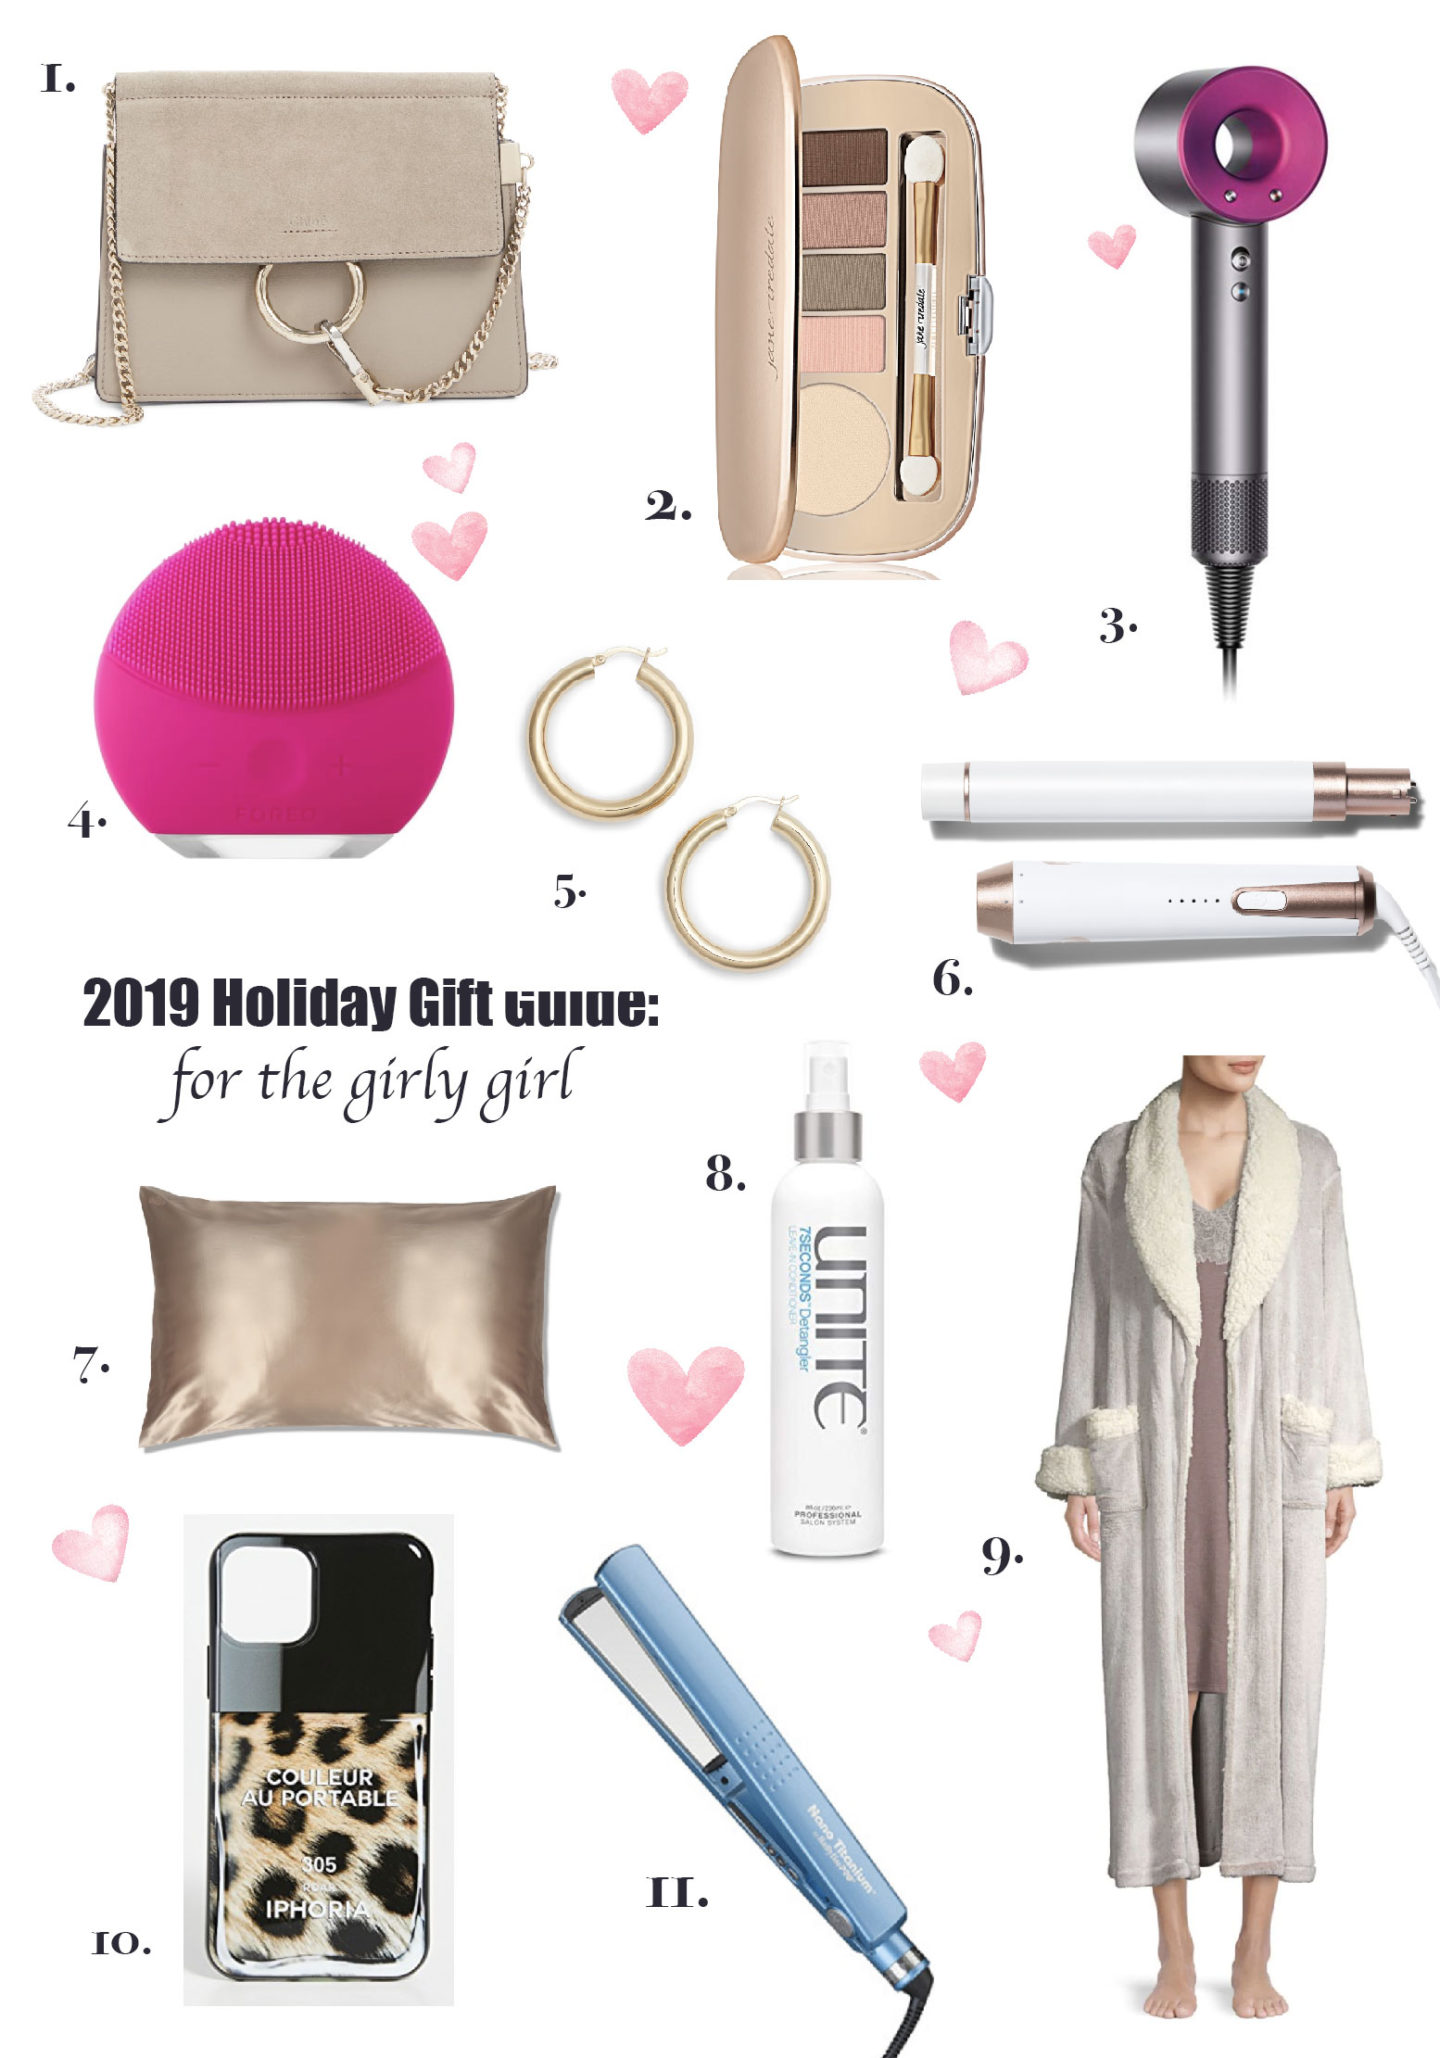 20 Gift Guide for the Girly Girl - Hapa Time